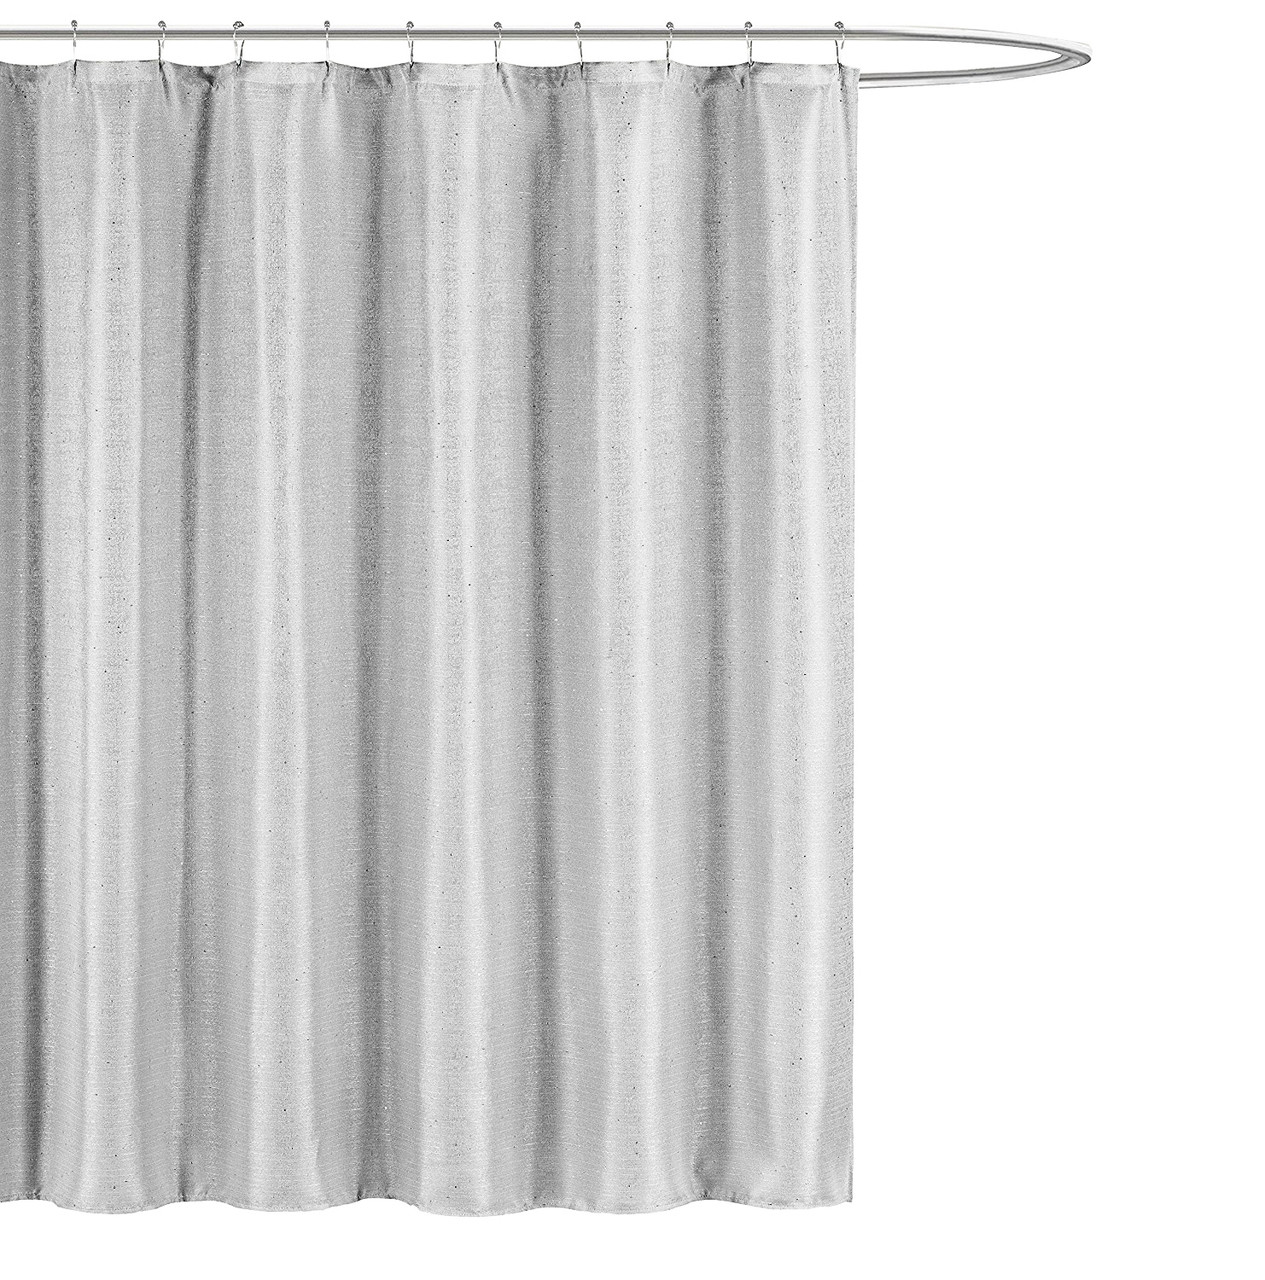 kensie home jane fabric shower curtain subtle pinstripe with sequins accents 70 x 72 inches stone grey